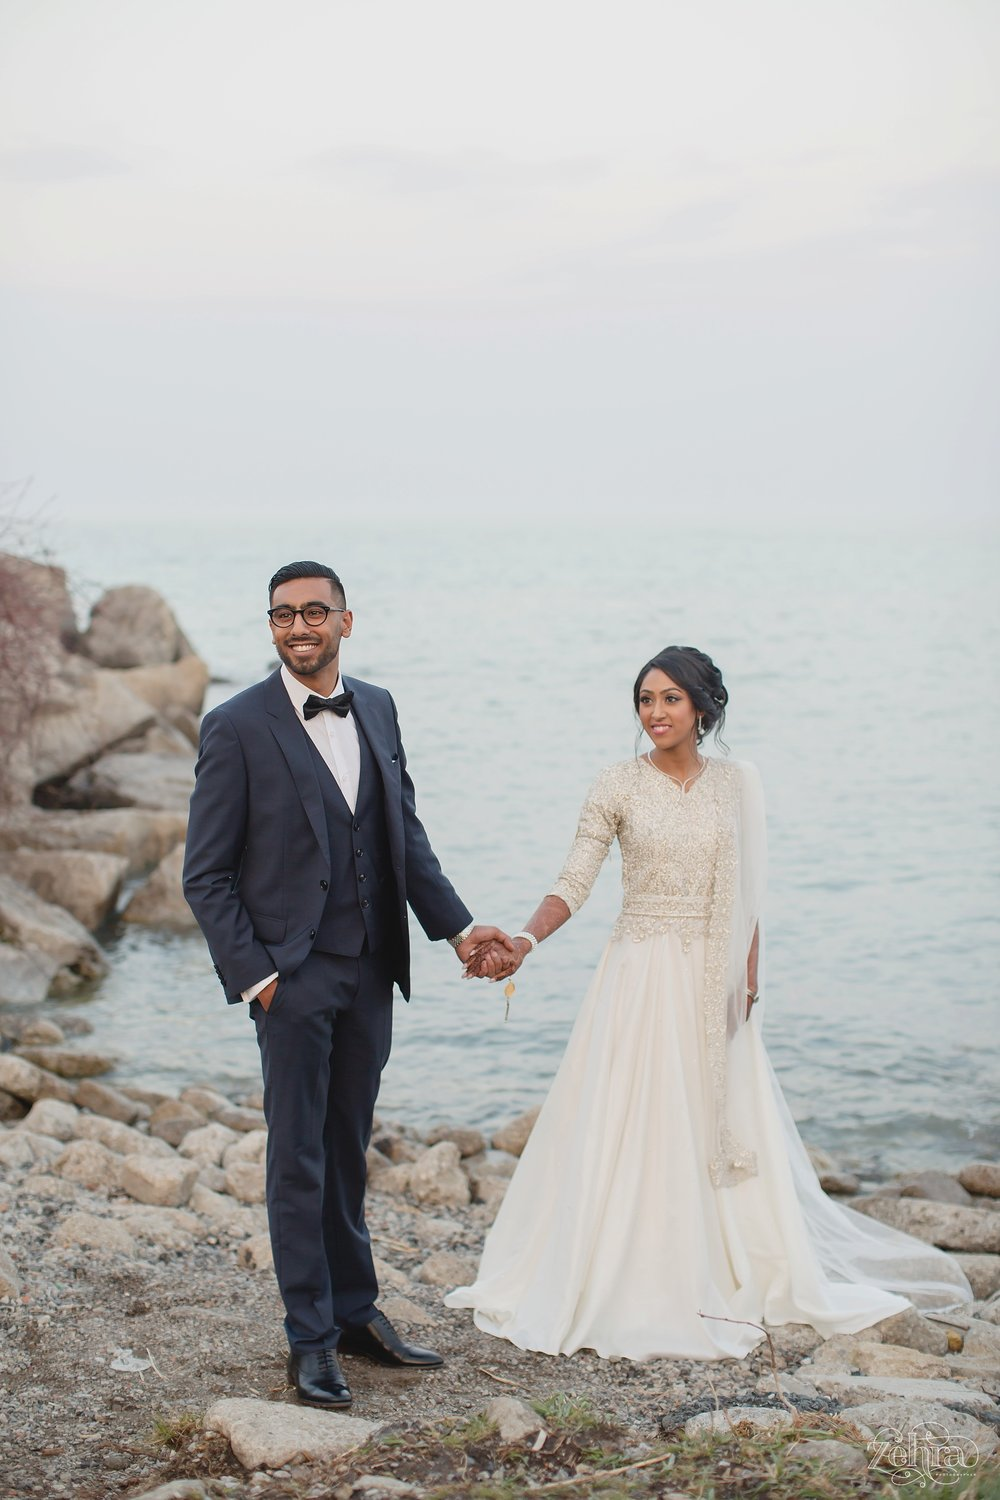 zehra photographer raheel toronto wedding_0035.jpg